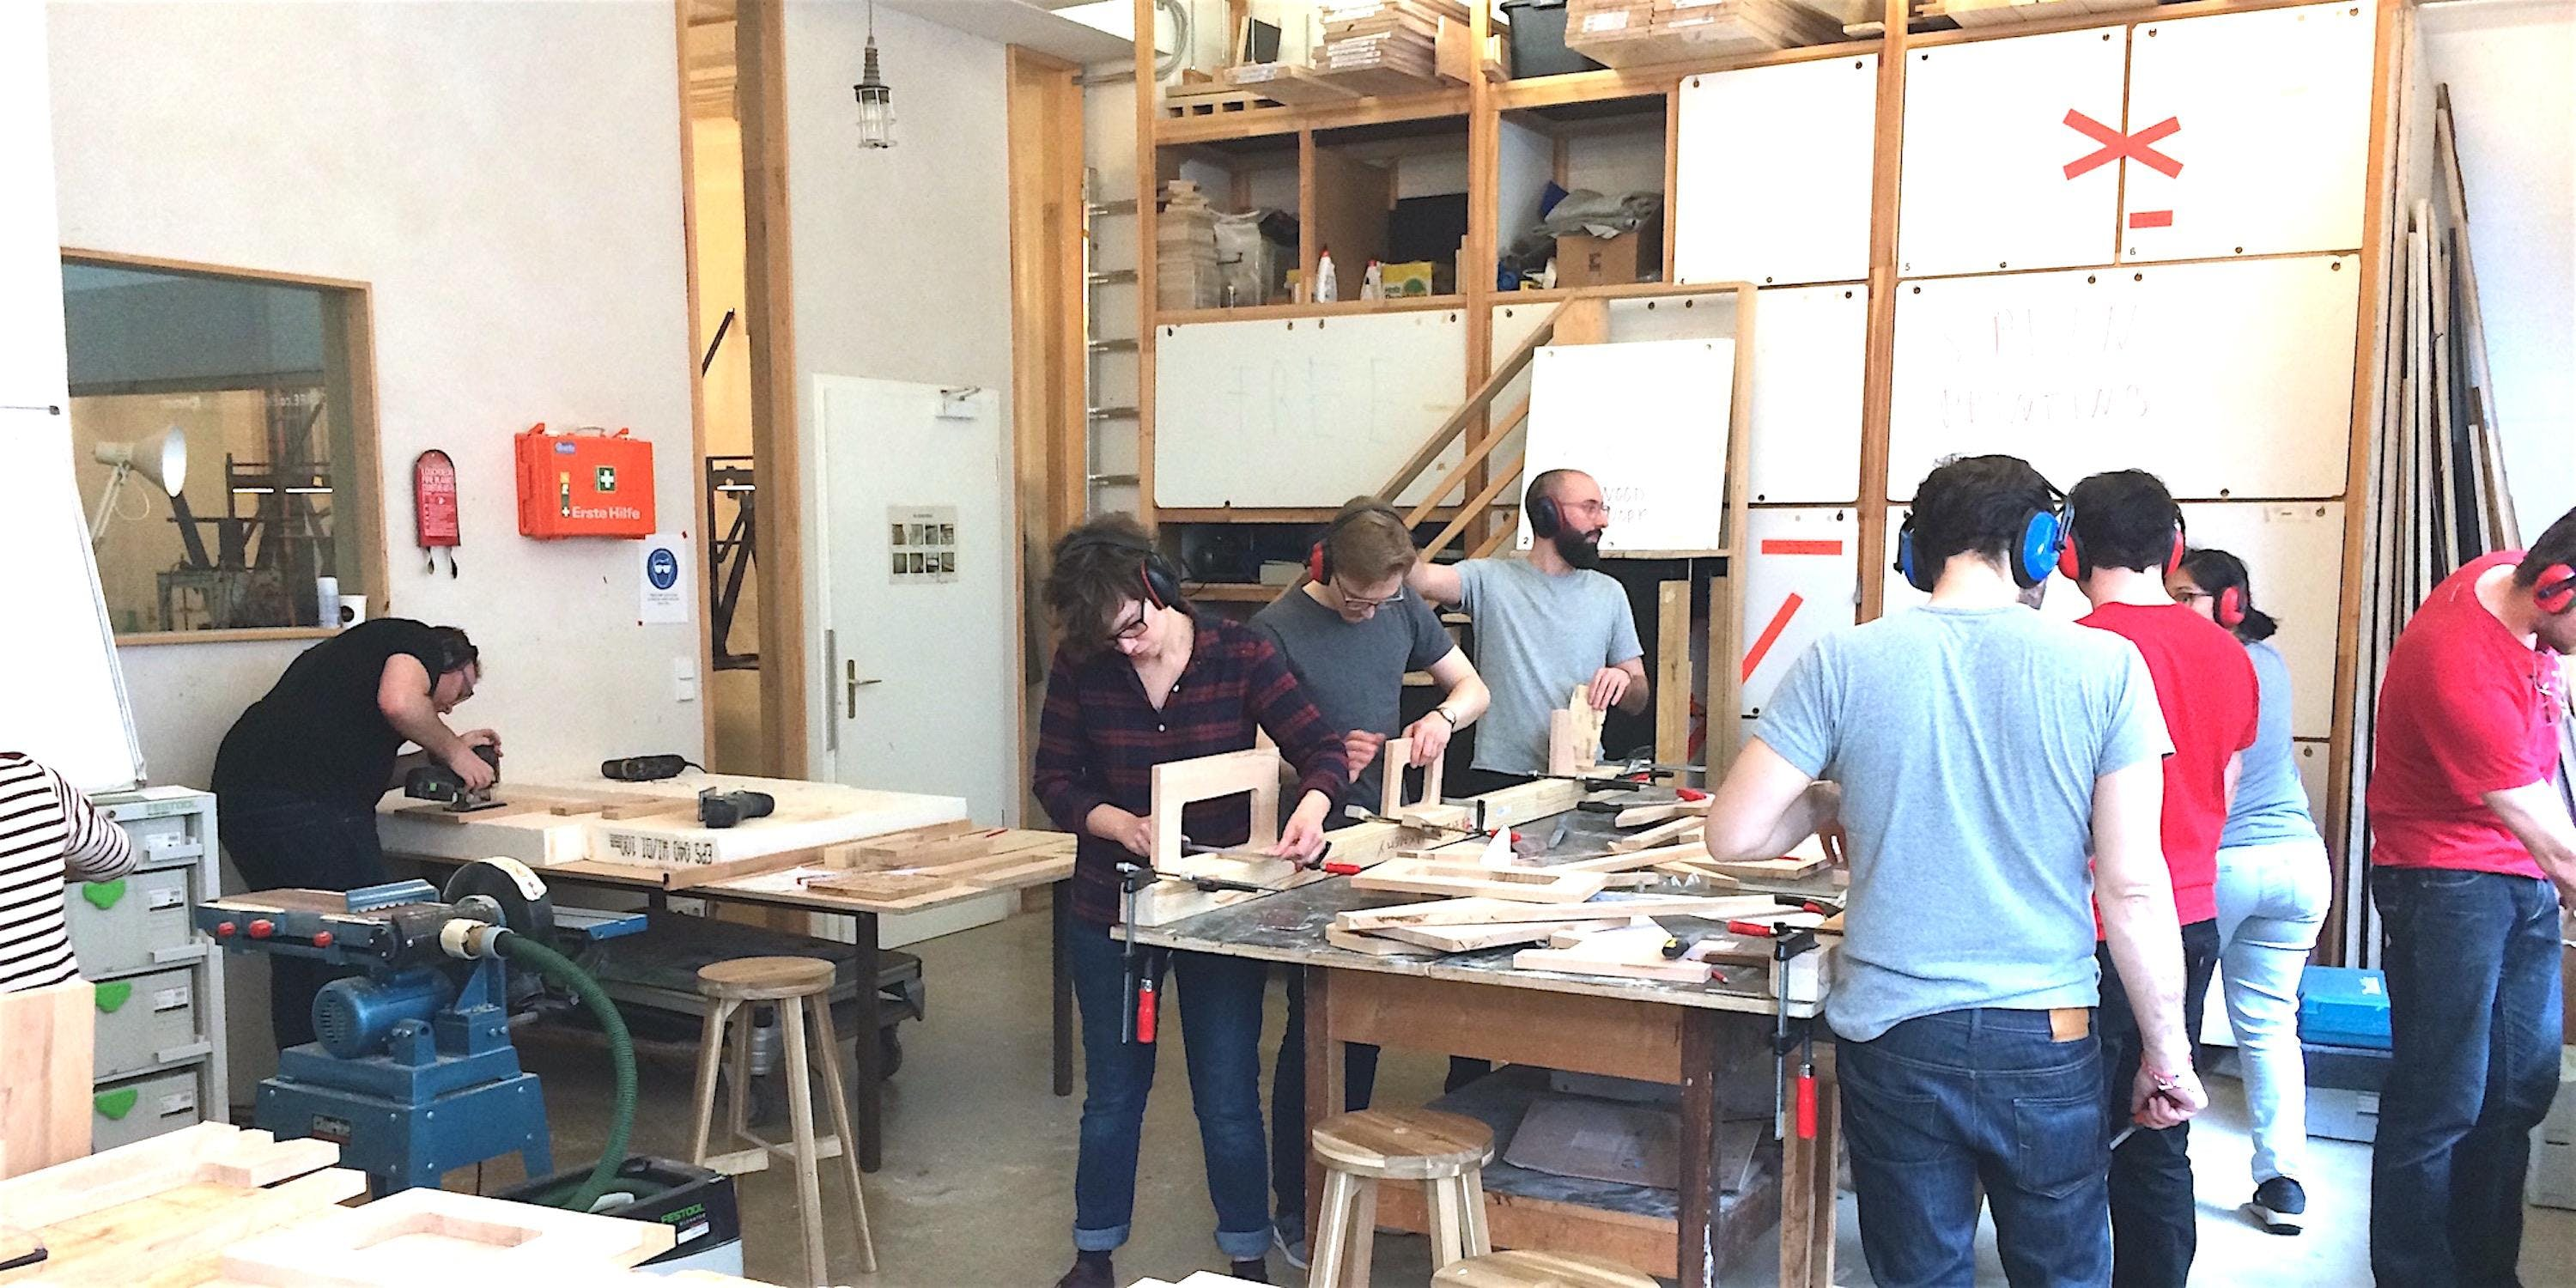 Working with Wood - A Beginners' Workshop